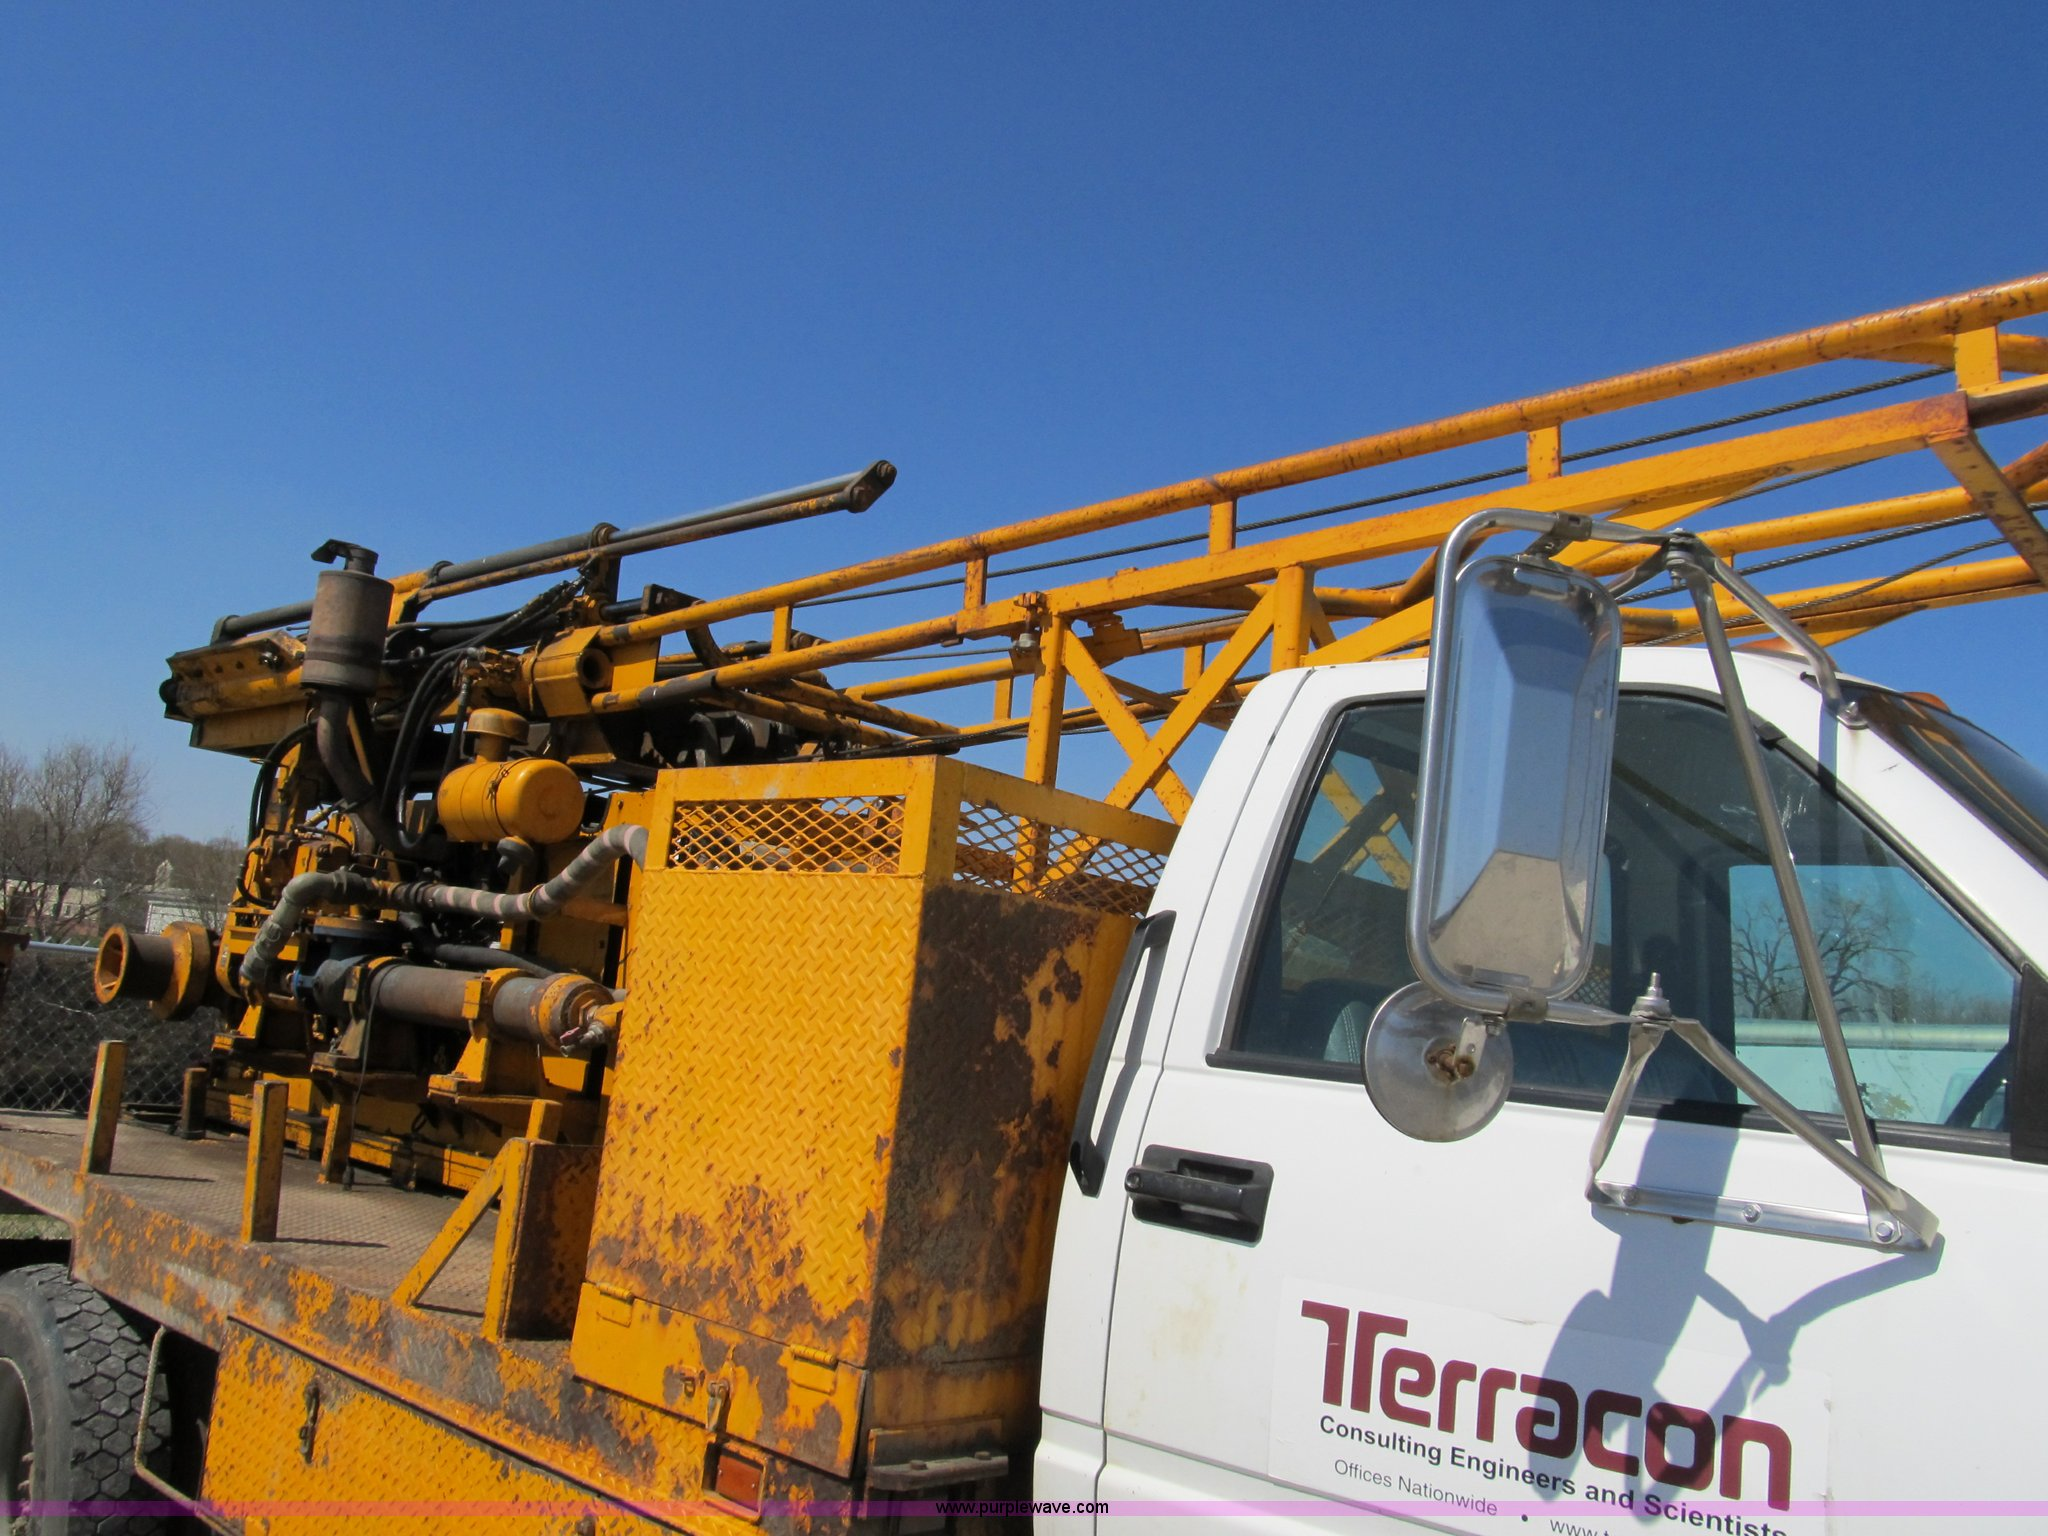 1998 GMC C7500 truck with CME drilling attachment | Item 899